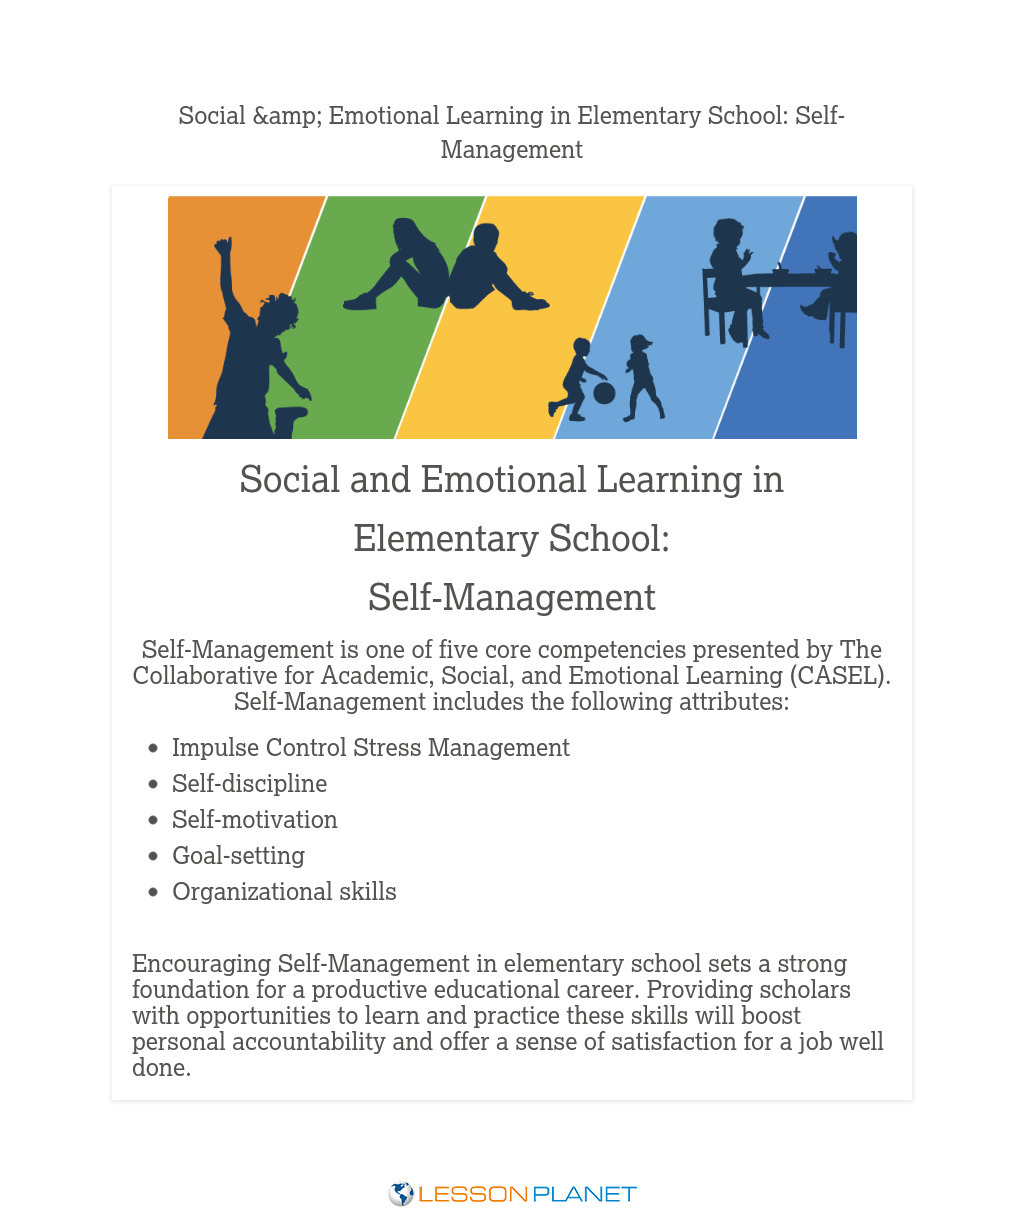 Social & Emotional Learning in Elementary School: Self-Management